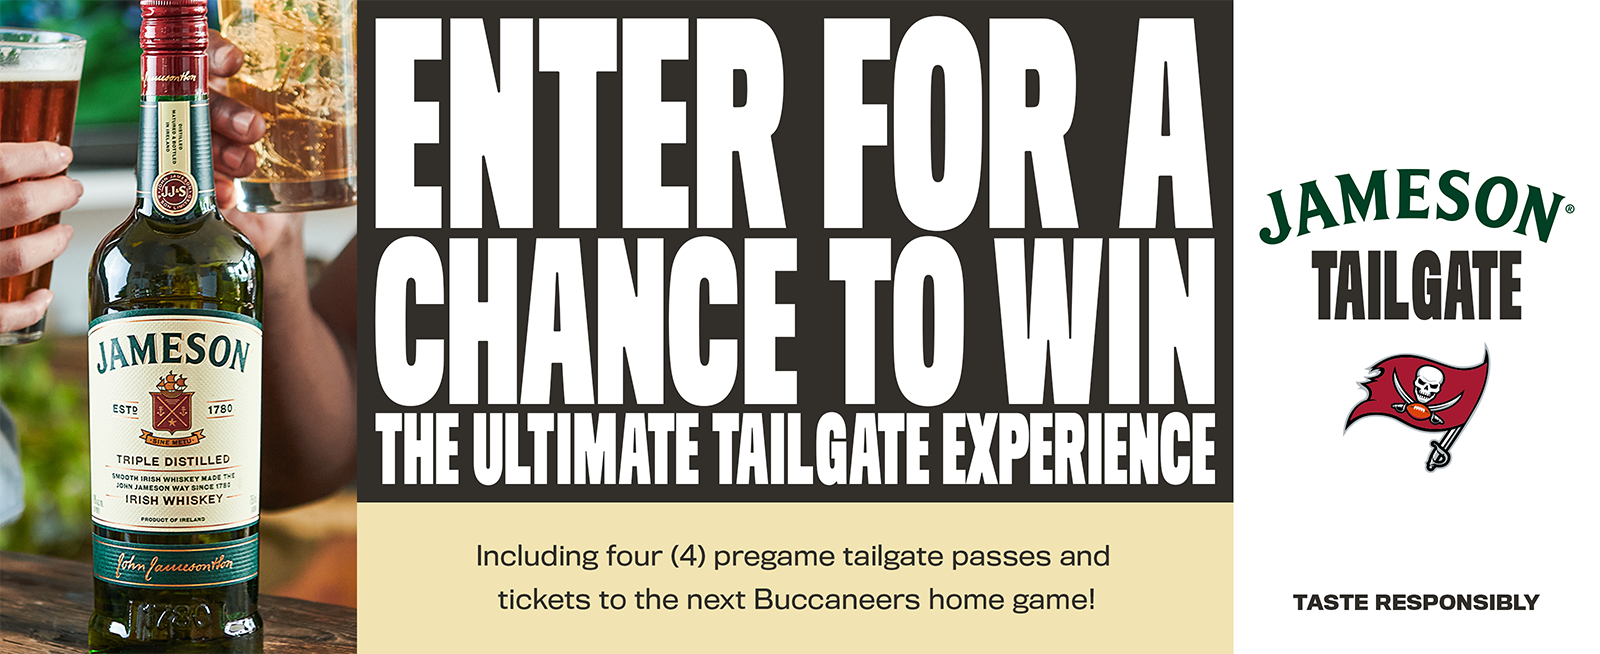 enter for a chance to win the ultimate tailgate experience